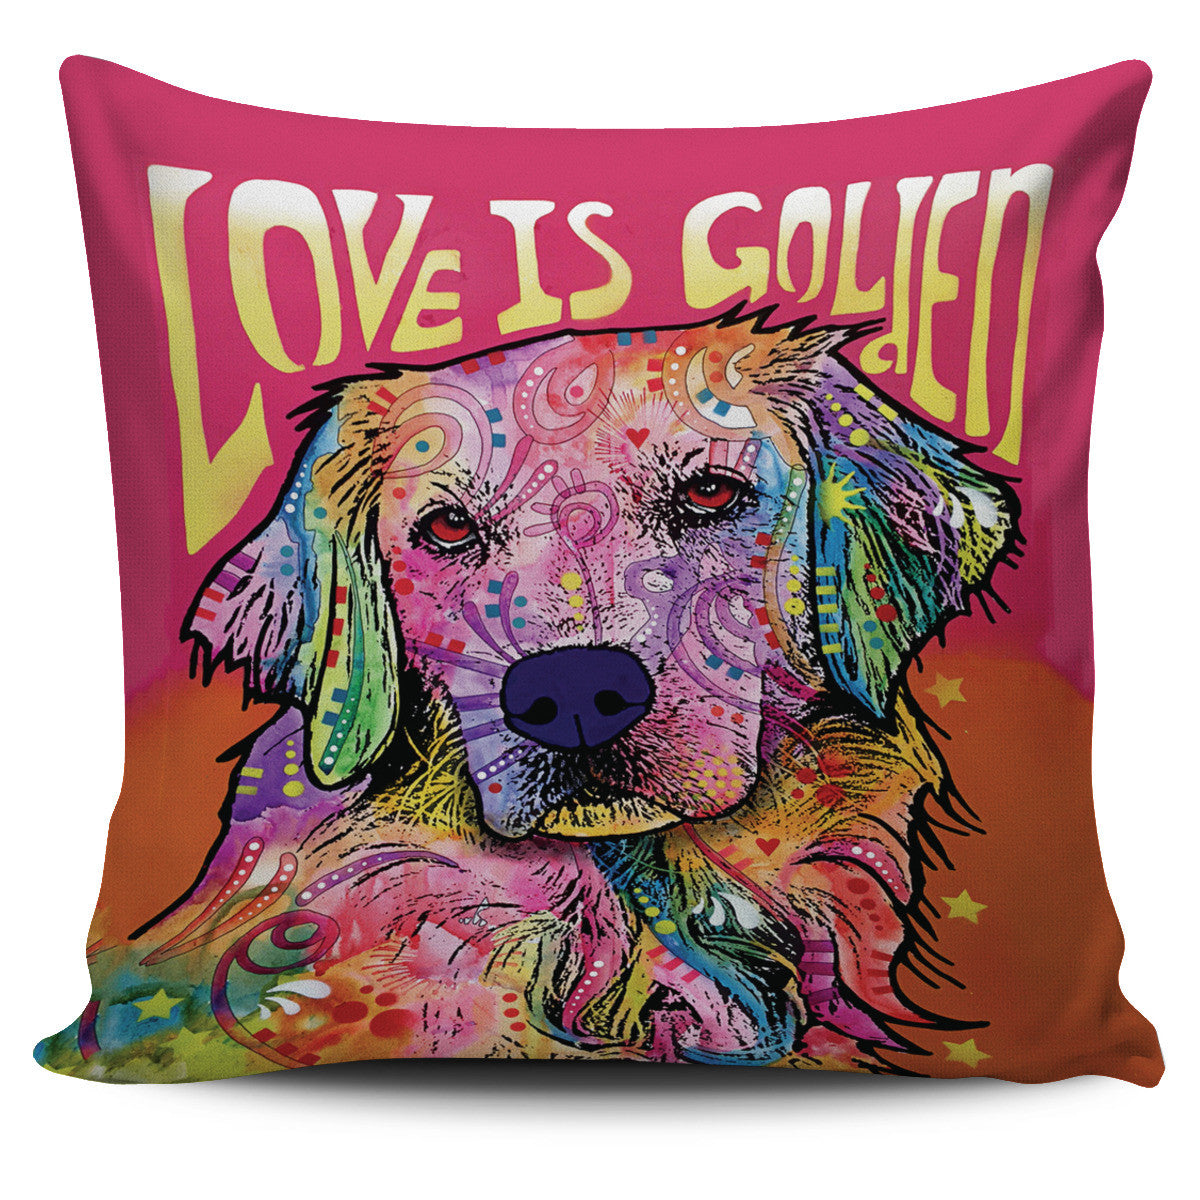 Golden Retriever Series Pillow Covers Offer